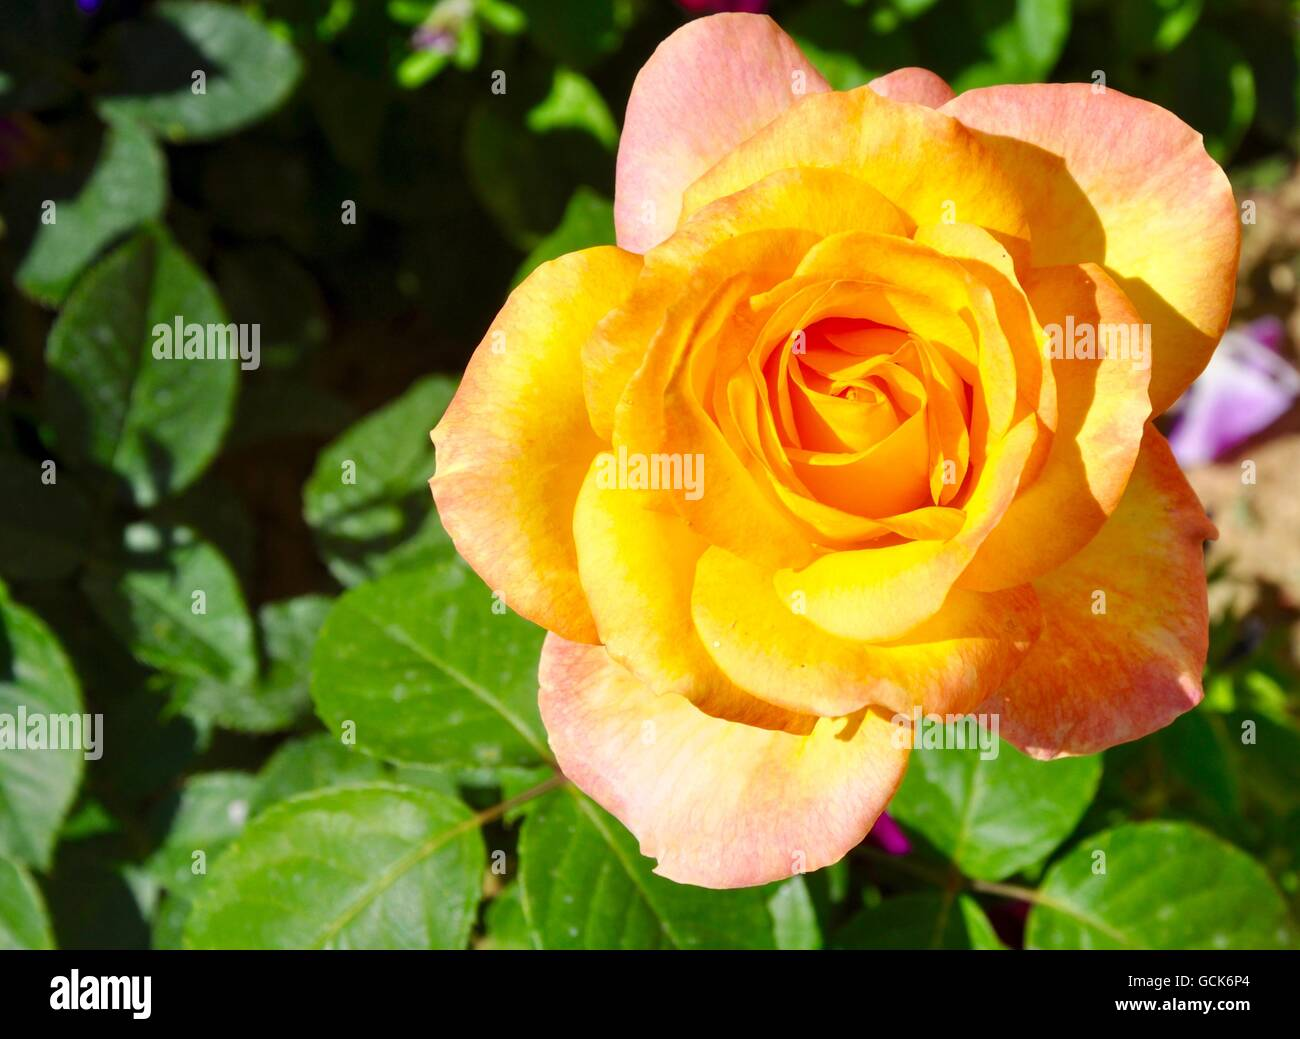 Peach and yellow friendship rose flower with green leaf background peach and yellow friendship rose flower with green leaf background mightylinksfo